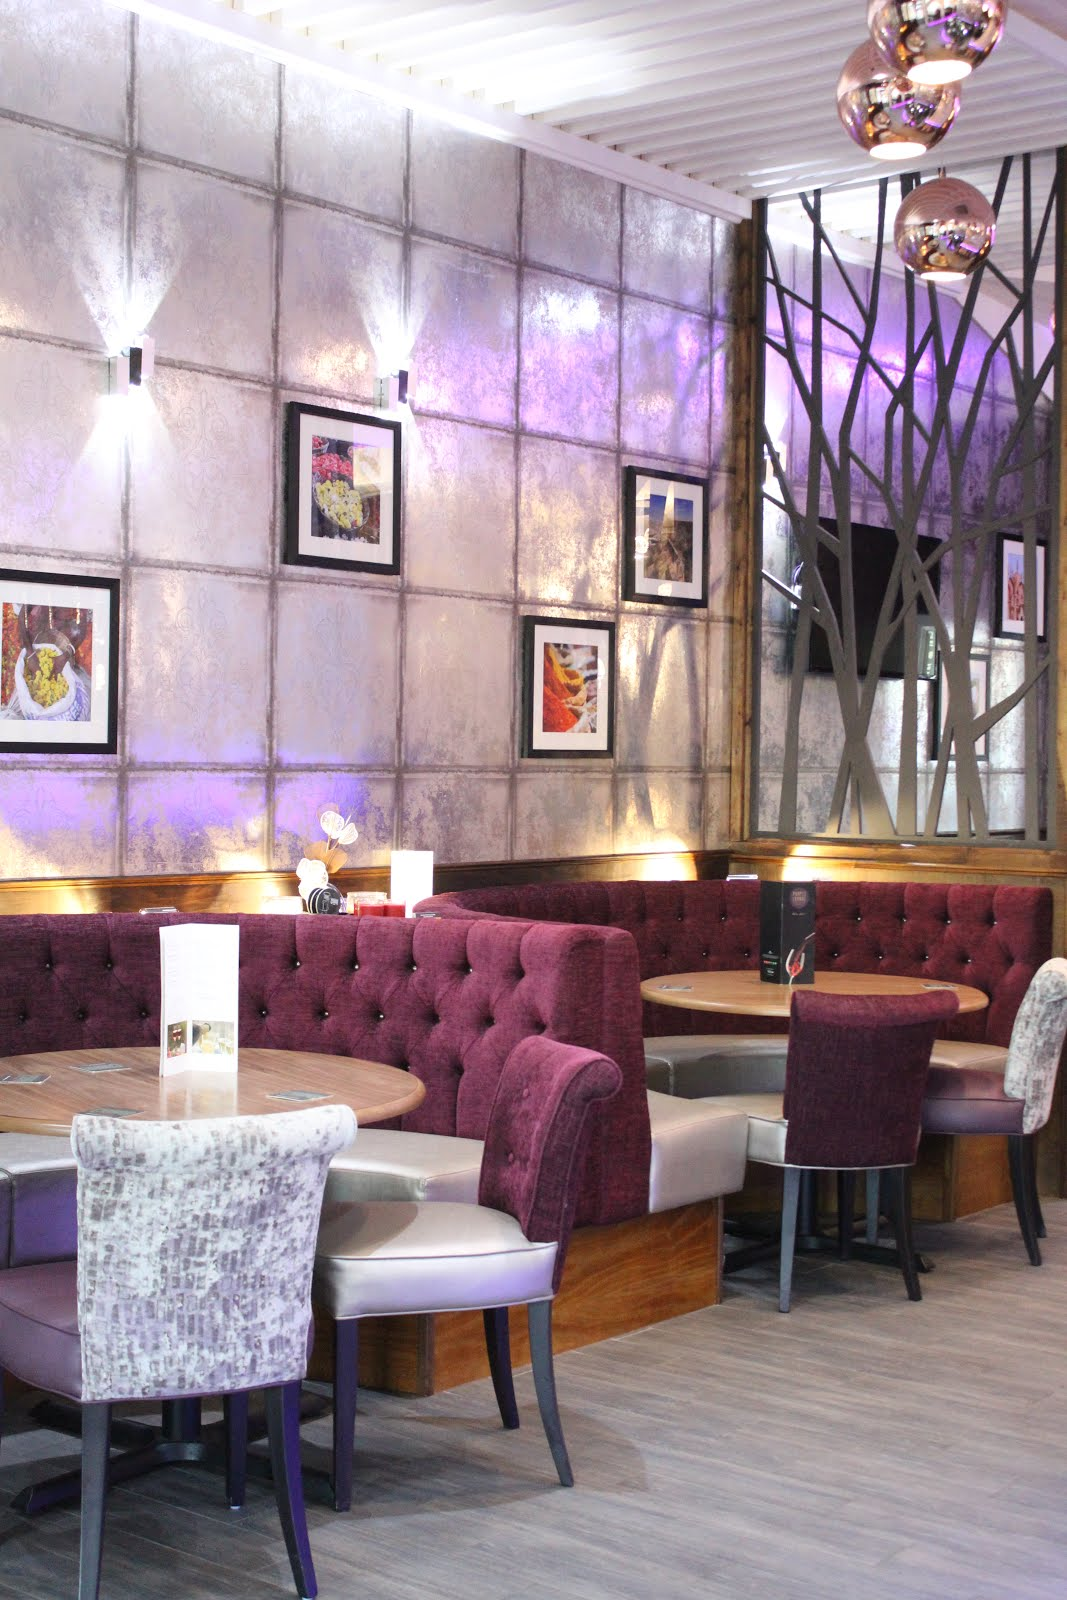 of free parking right outside while inside the contemporary interior design features cool tones of silver and purple as well as eye catching lighting